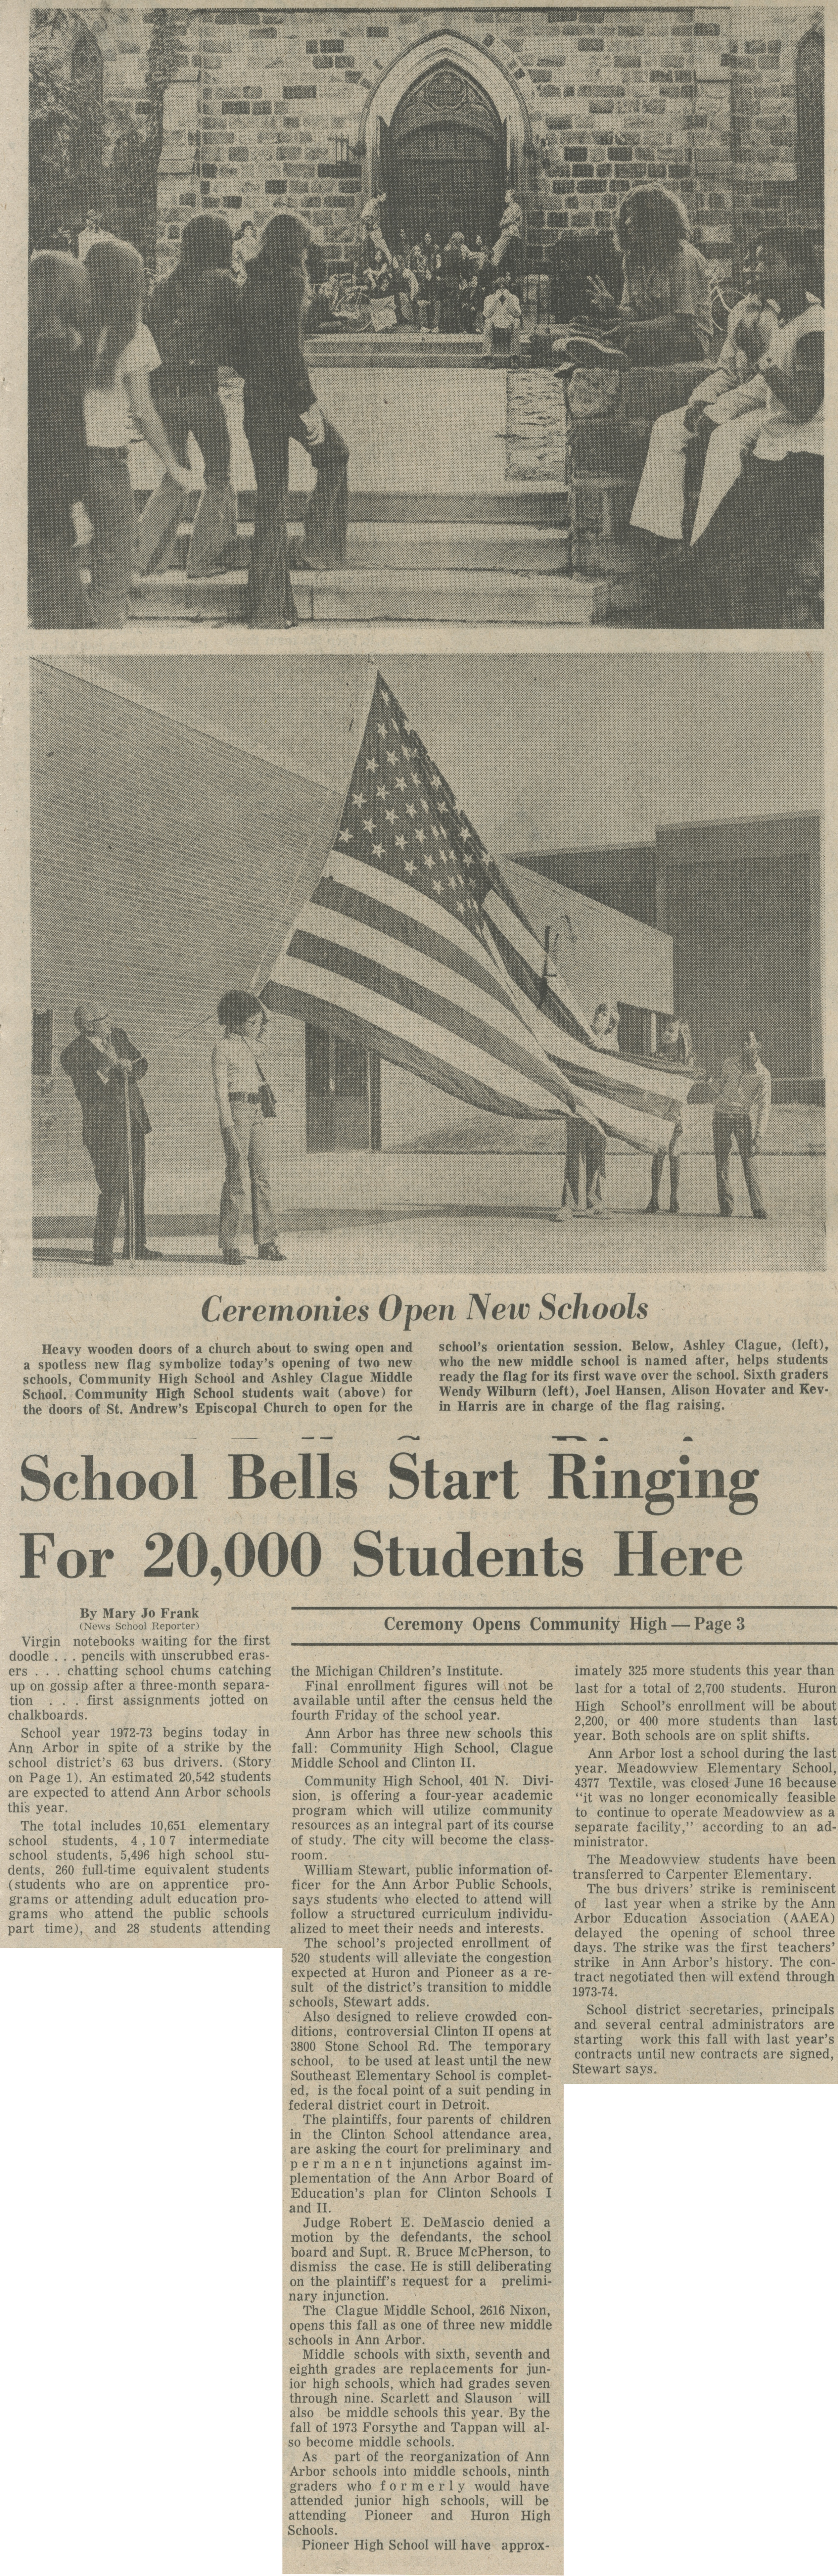 School Bells Start Ringing For 20,000 Students Here image